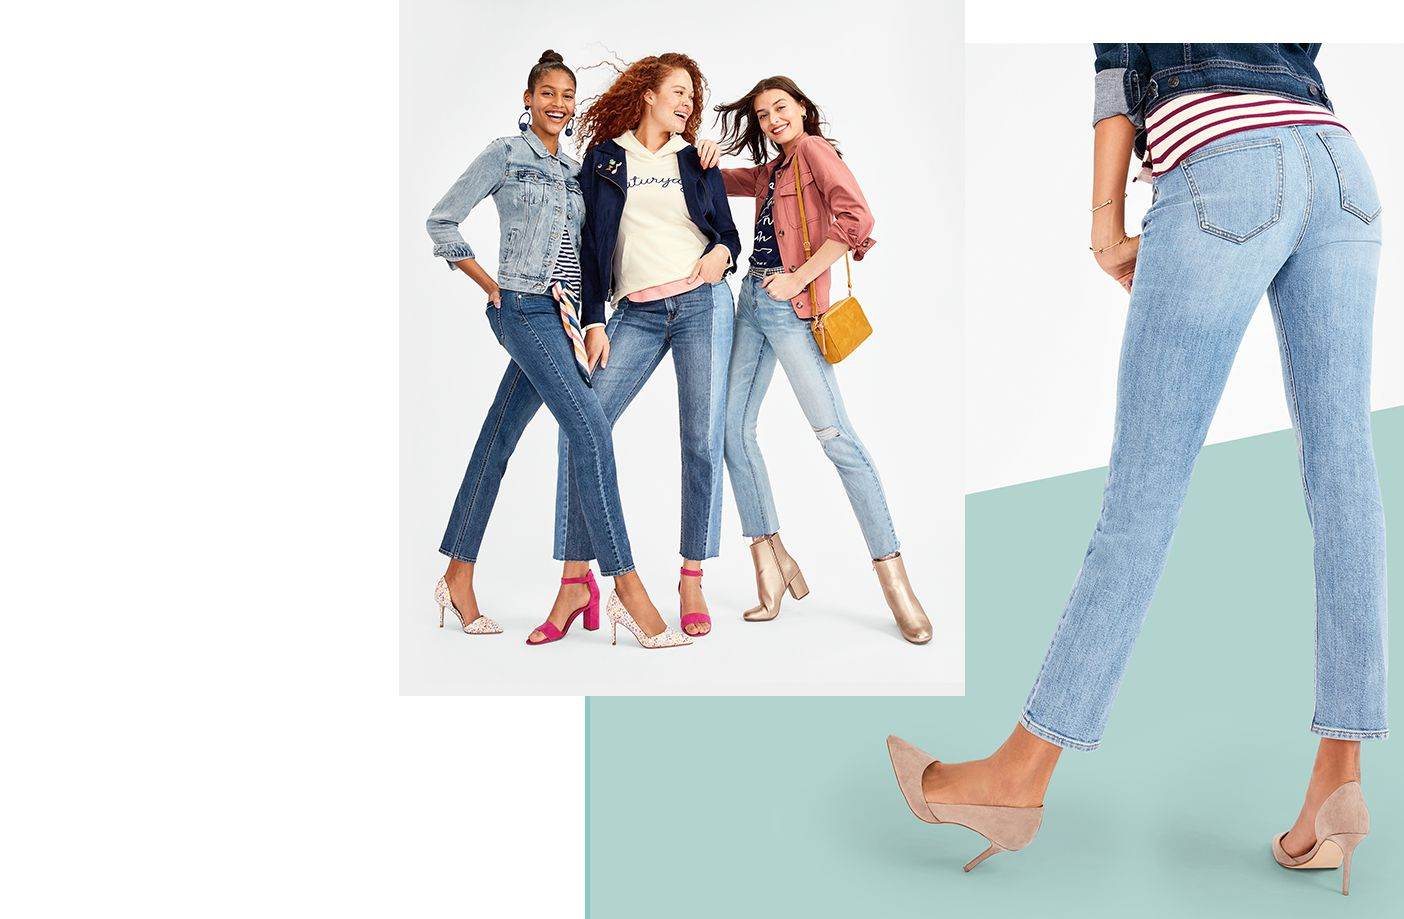 Up to 50% off all jeans on sale.